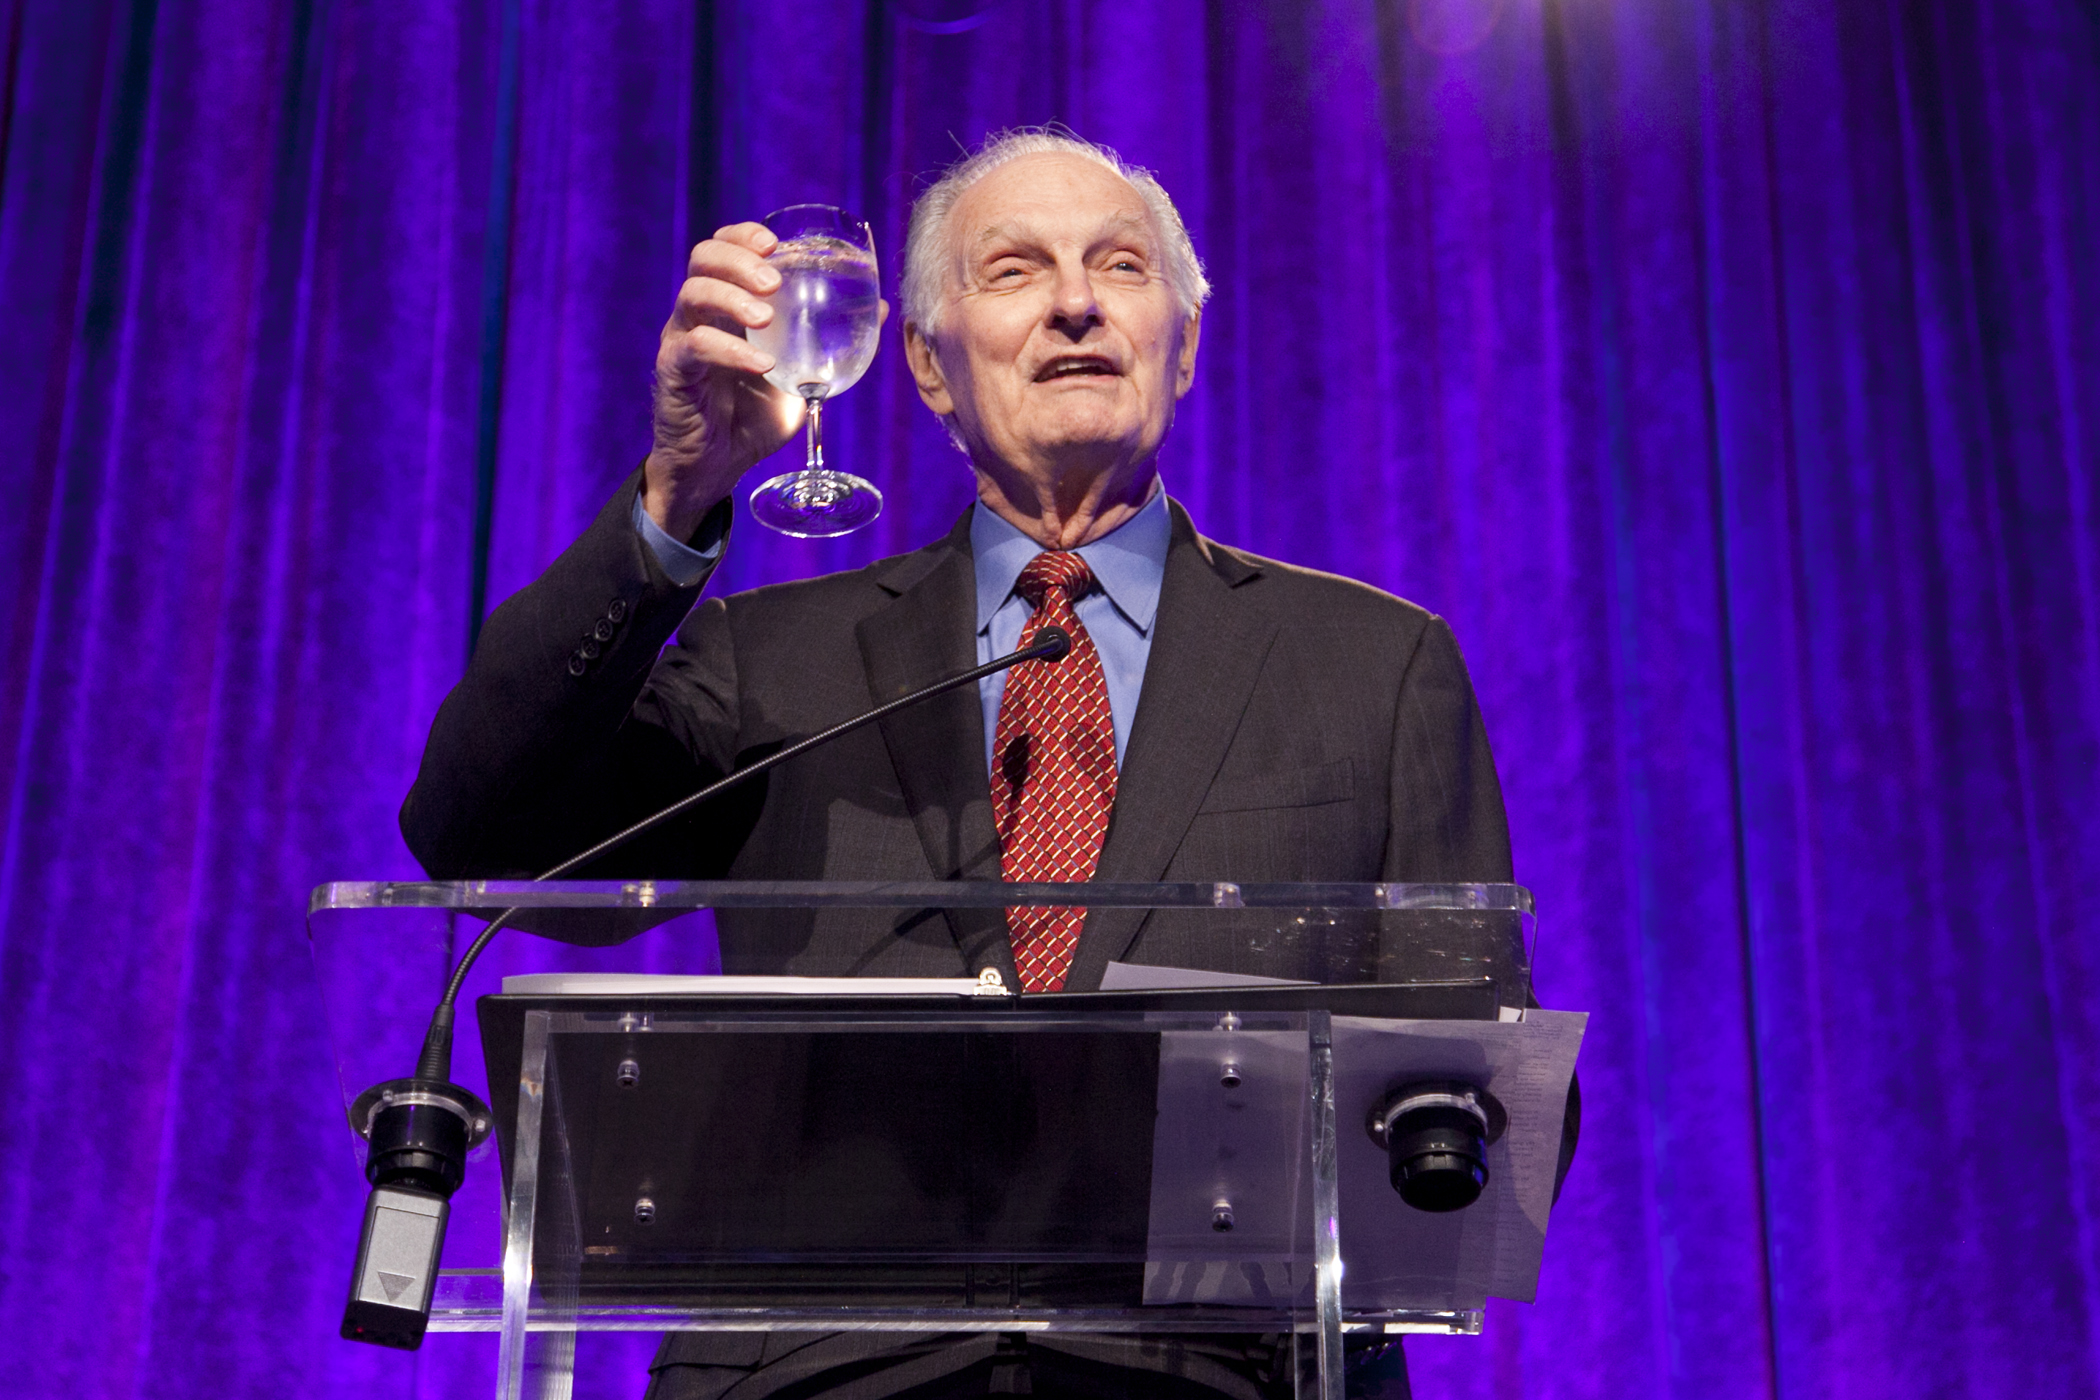 Alan Alda, at Science Friday's 25th Anniversary Gala. Credit: Peter Reitzfeld